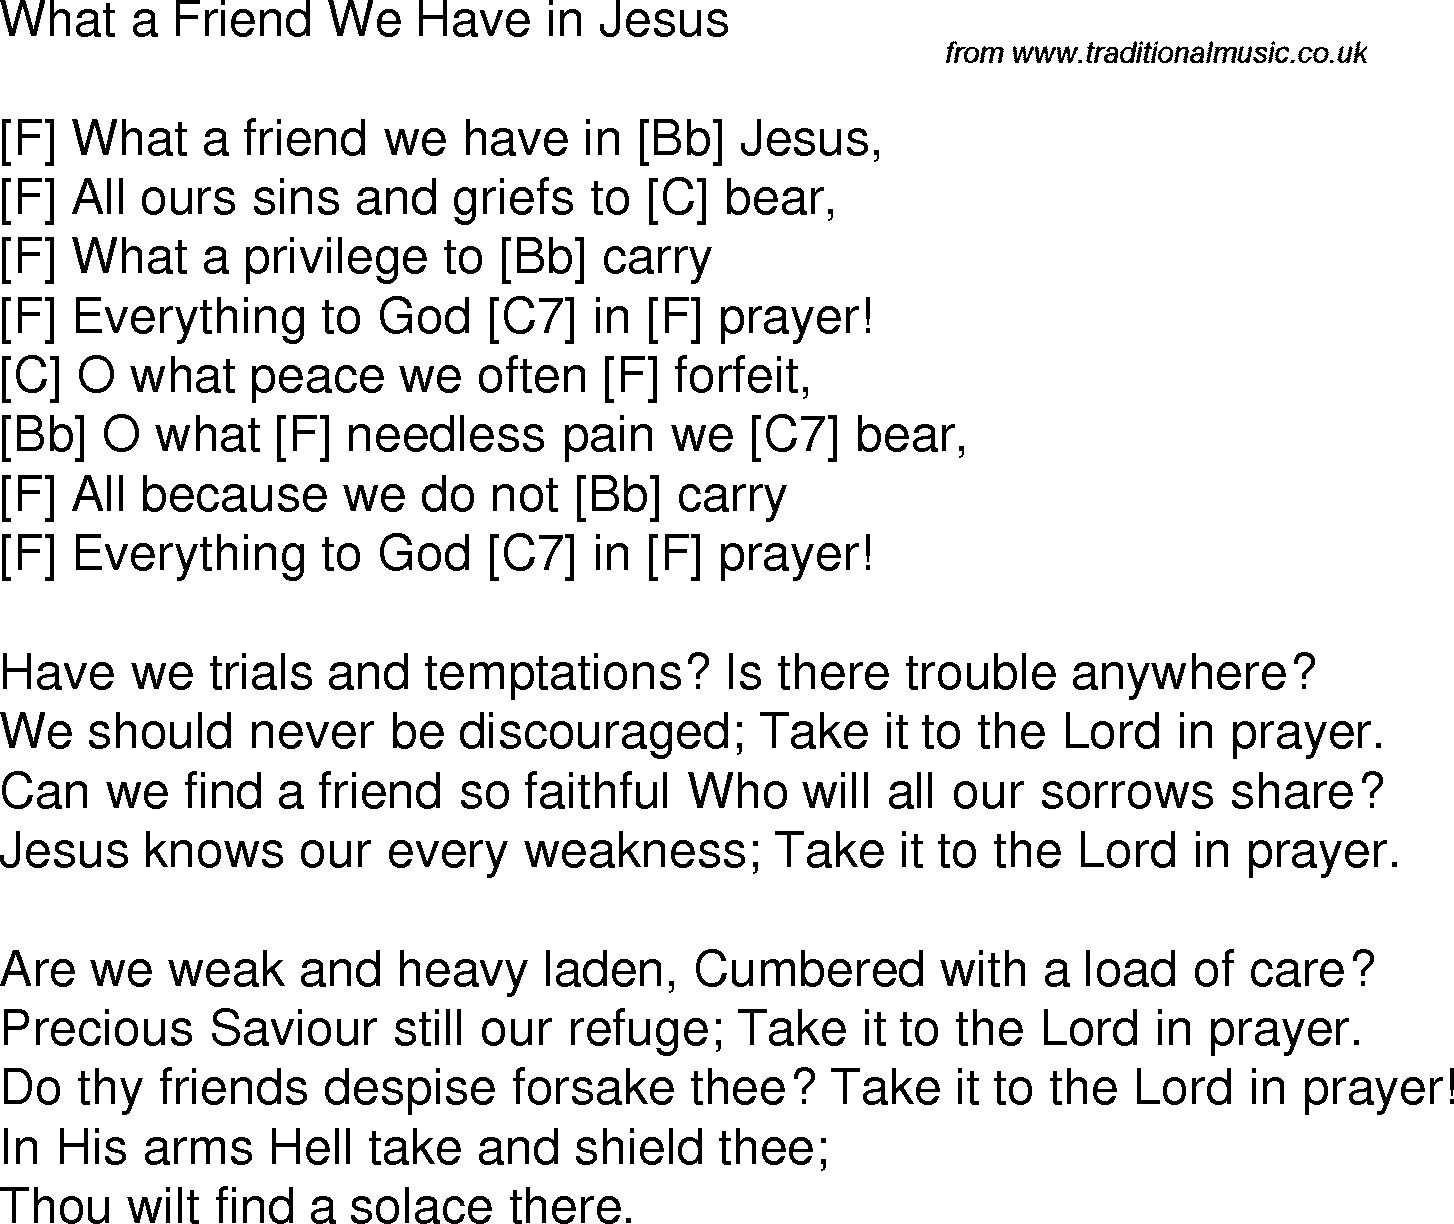 Old Time Song Lyrics With Chords For What A Friend We Have In Jesus